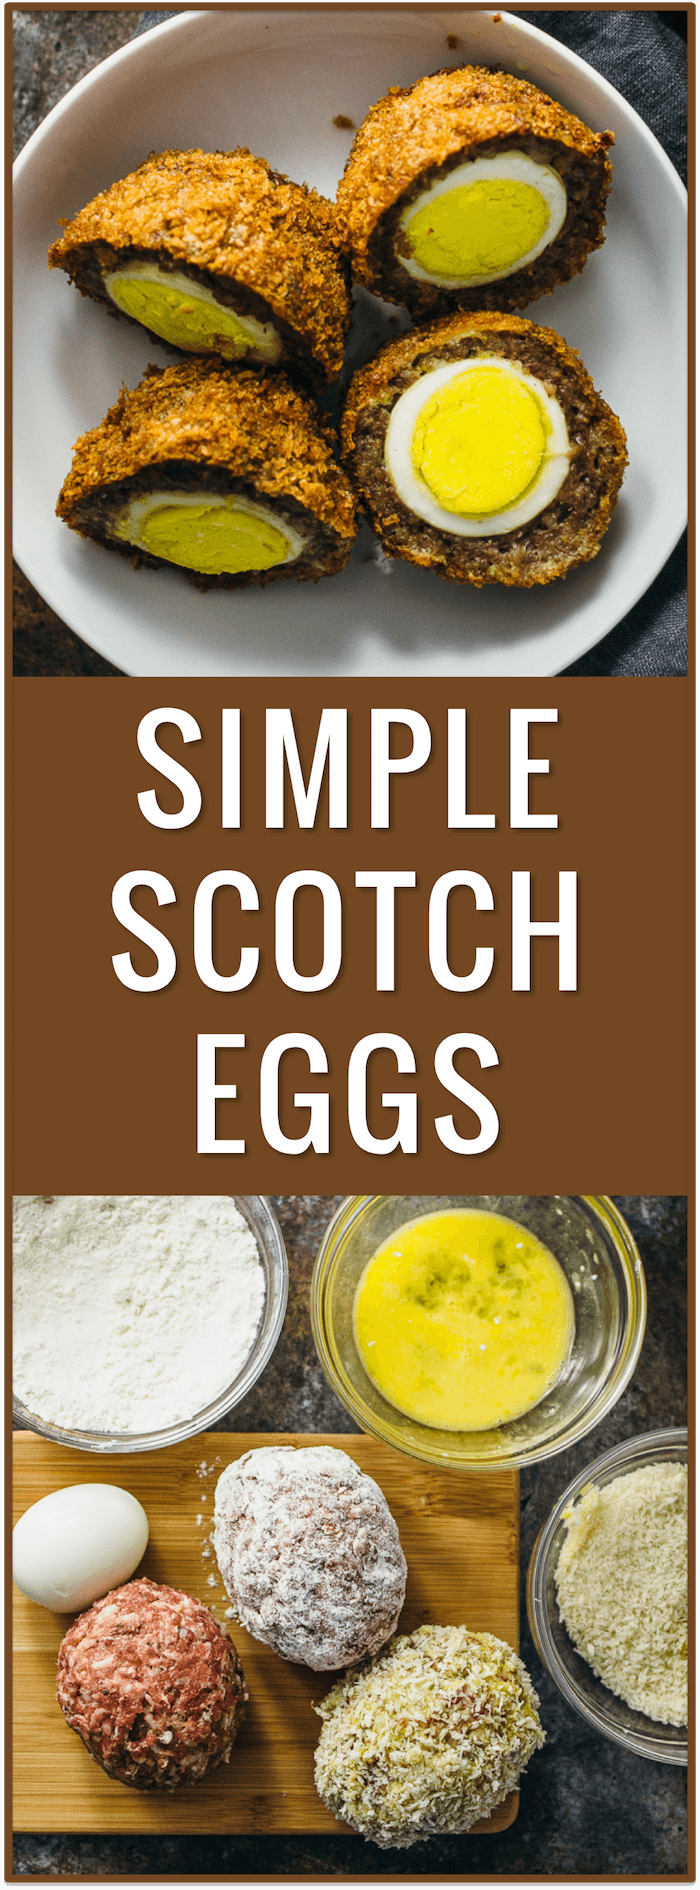 Scotch eggs with curry mustard sauce - Savory Tooth